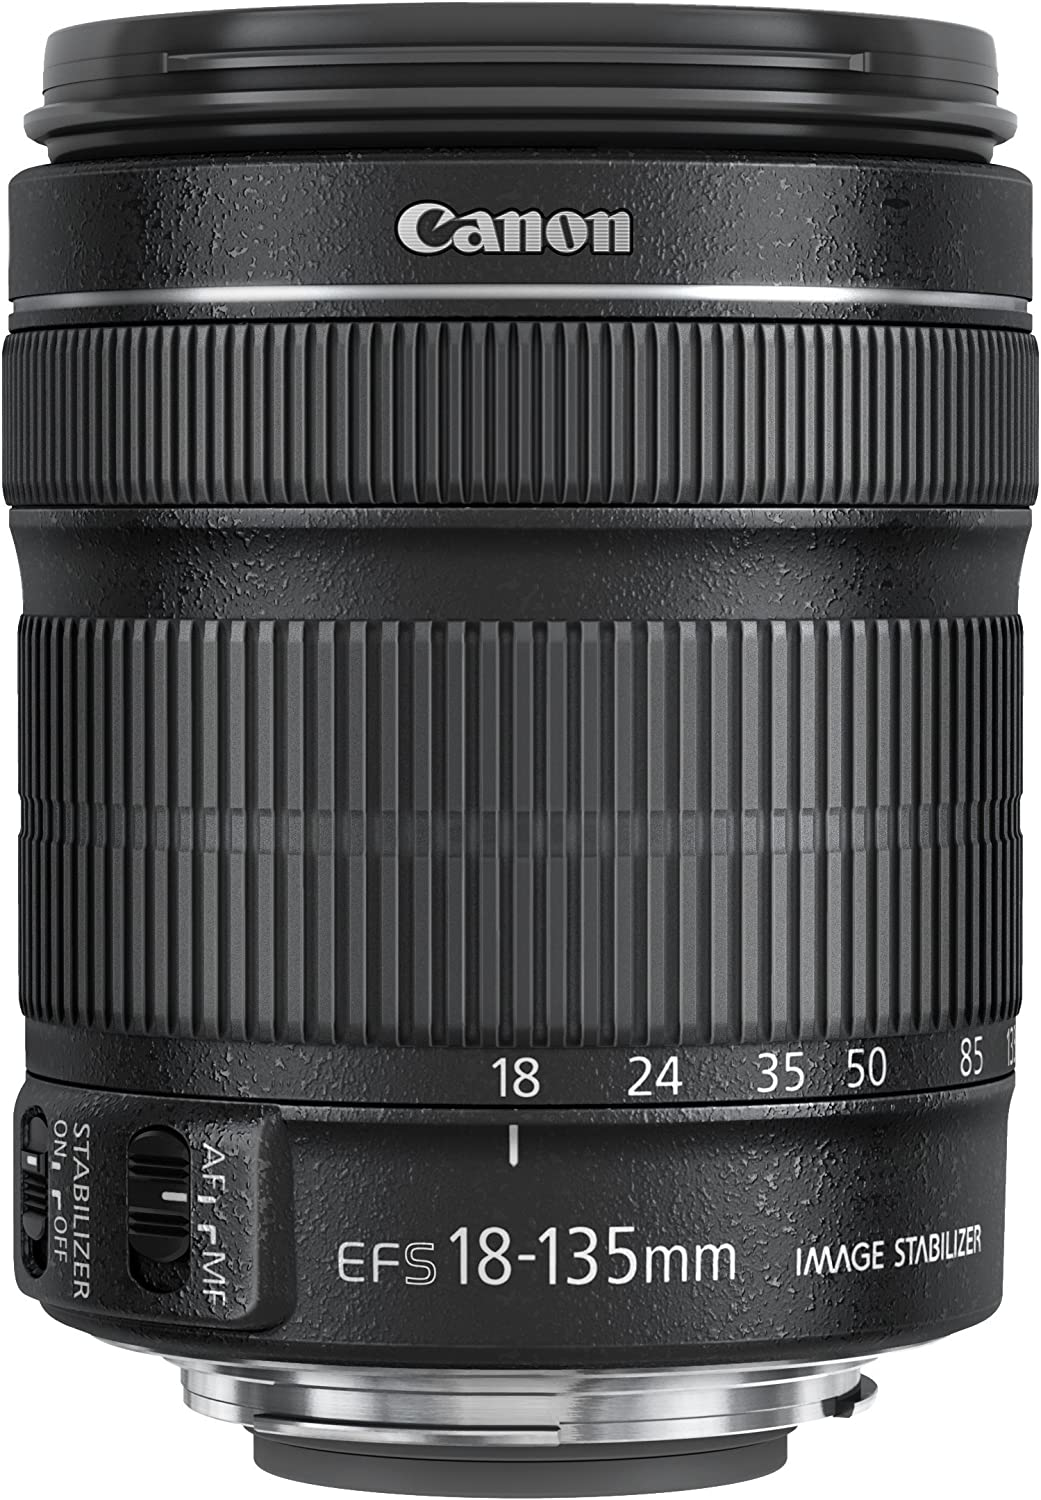 with 1-Year Canon USA Warranty Canon EF-S 18-135mm f//3.5-5.6 is STM Lens in White Box